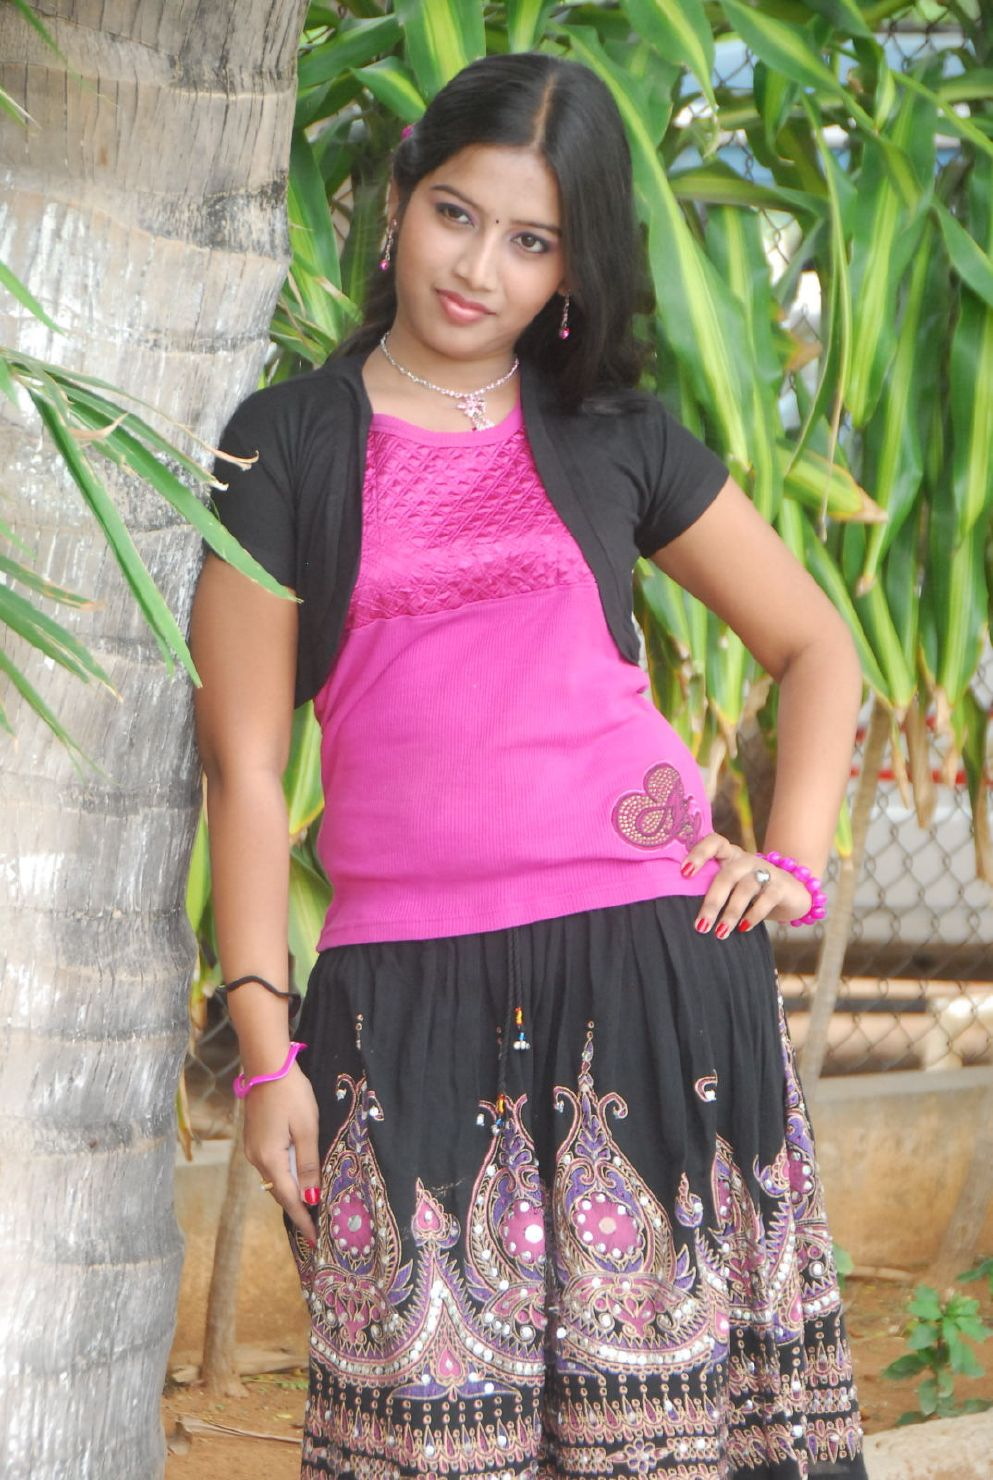 Indian Young Teen Model Fashion Glamour Model